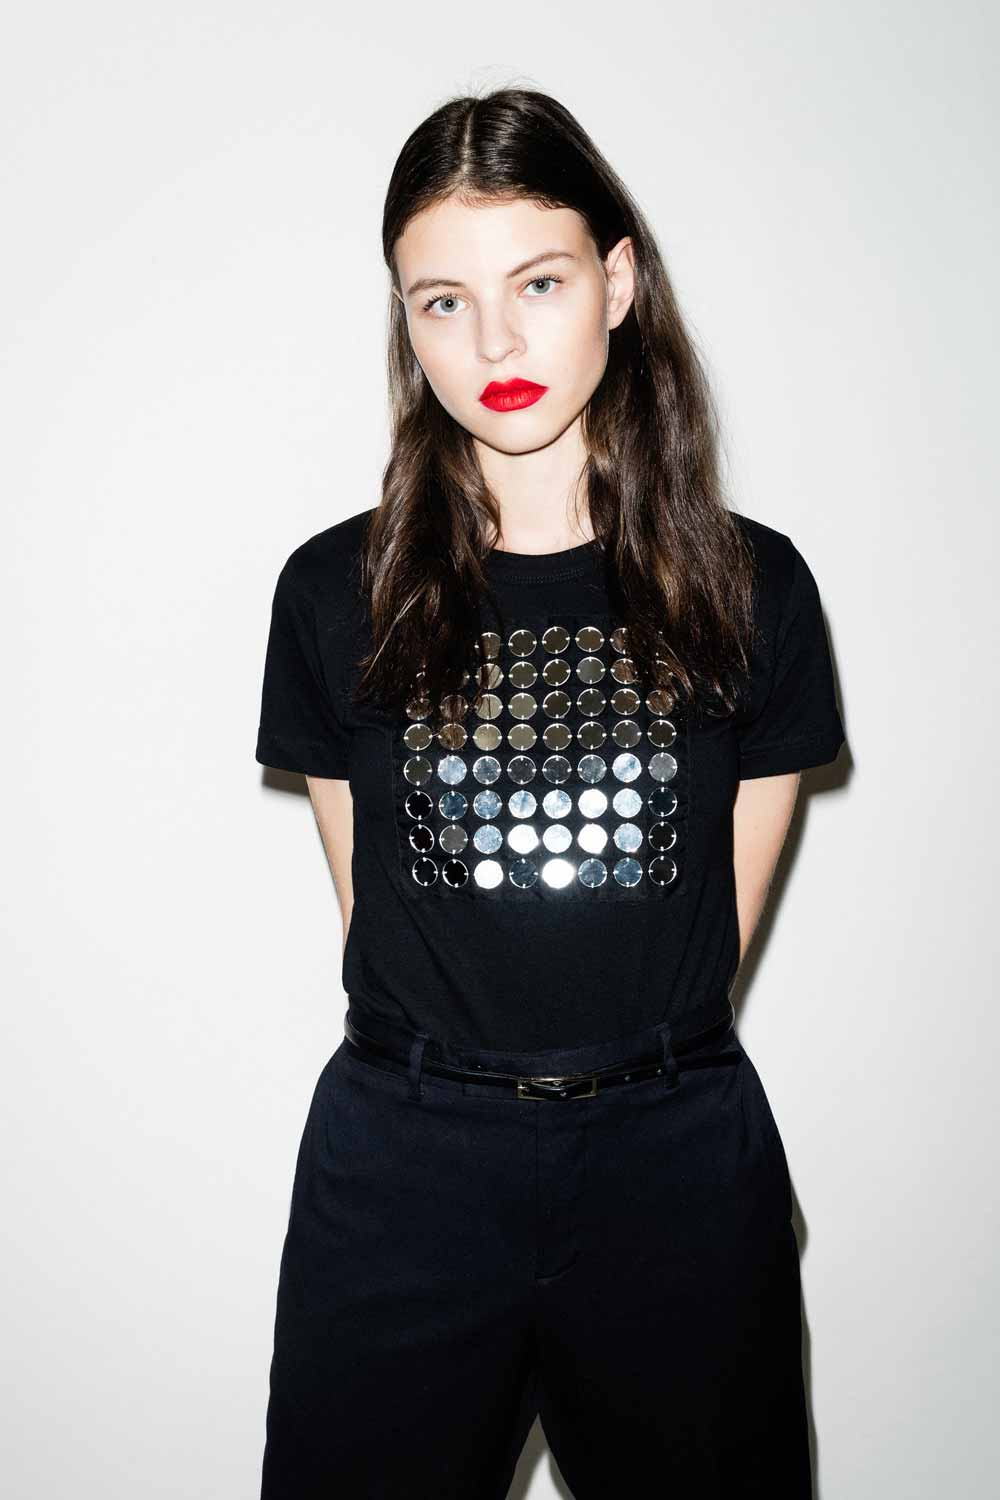 fflag-tee-shirt-ornement-miroir-broderie-couture-4